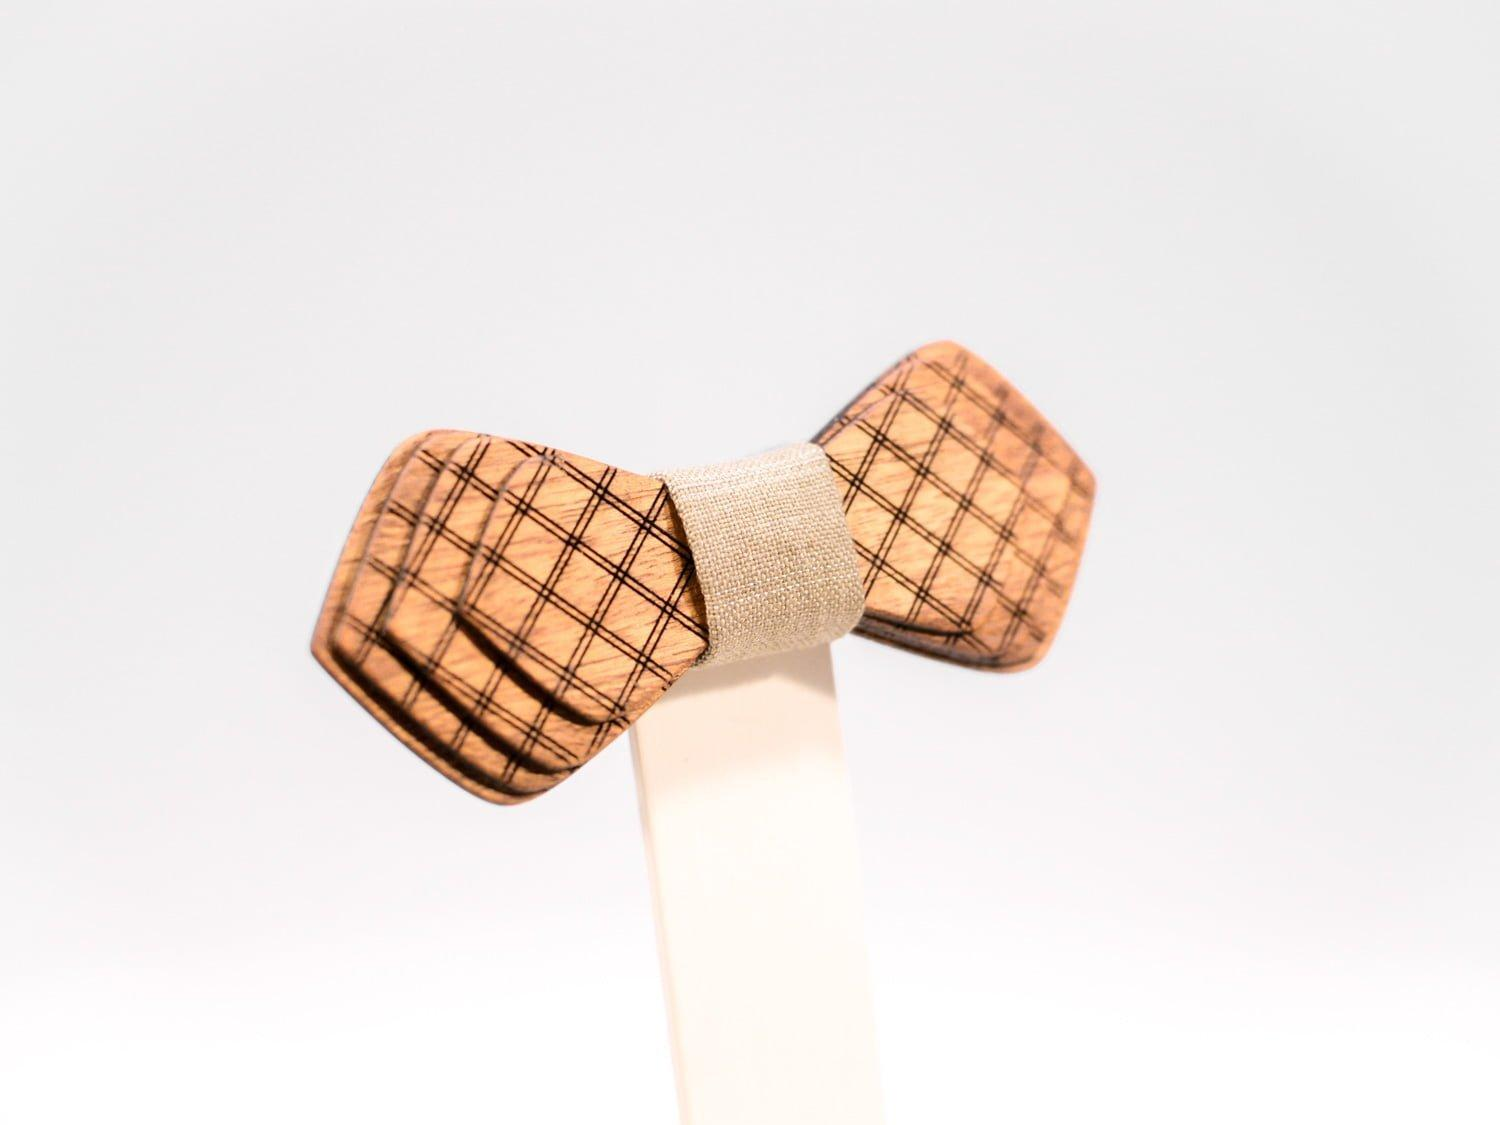 Jr. SÖÖR Denis neckwear in mahogany. A unique wooden bowtie